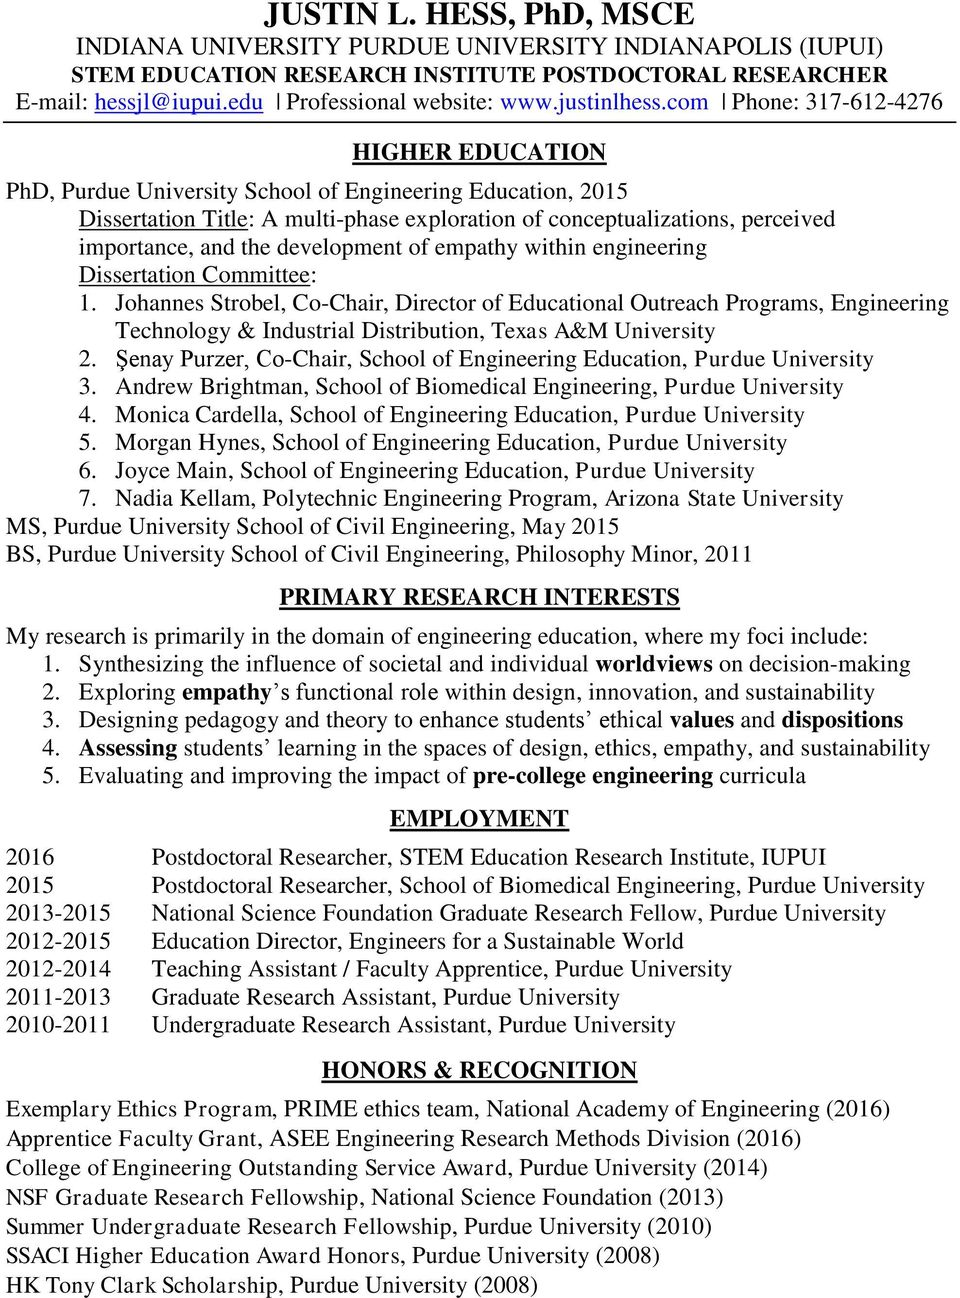 resume format for plumbing i essay on summer vacation pdf typing essay test the gradcafe forums by